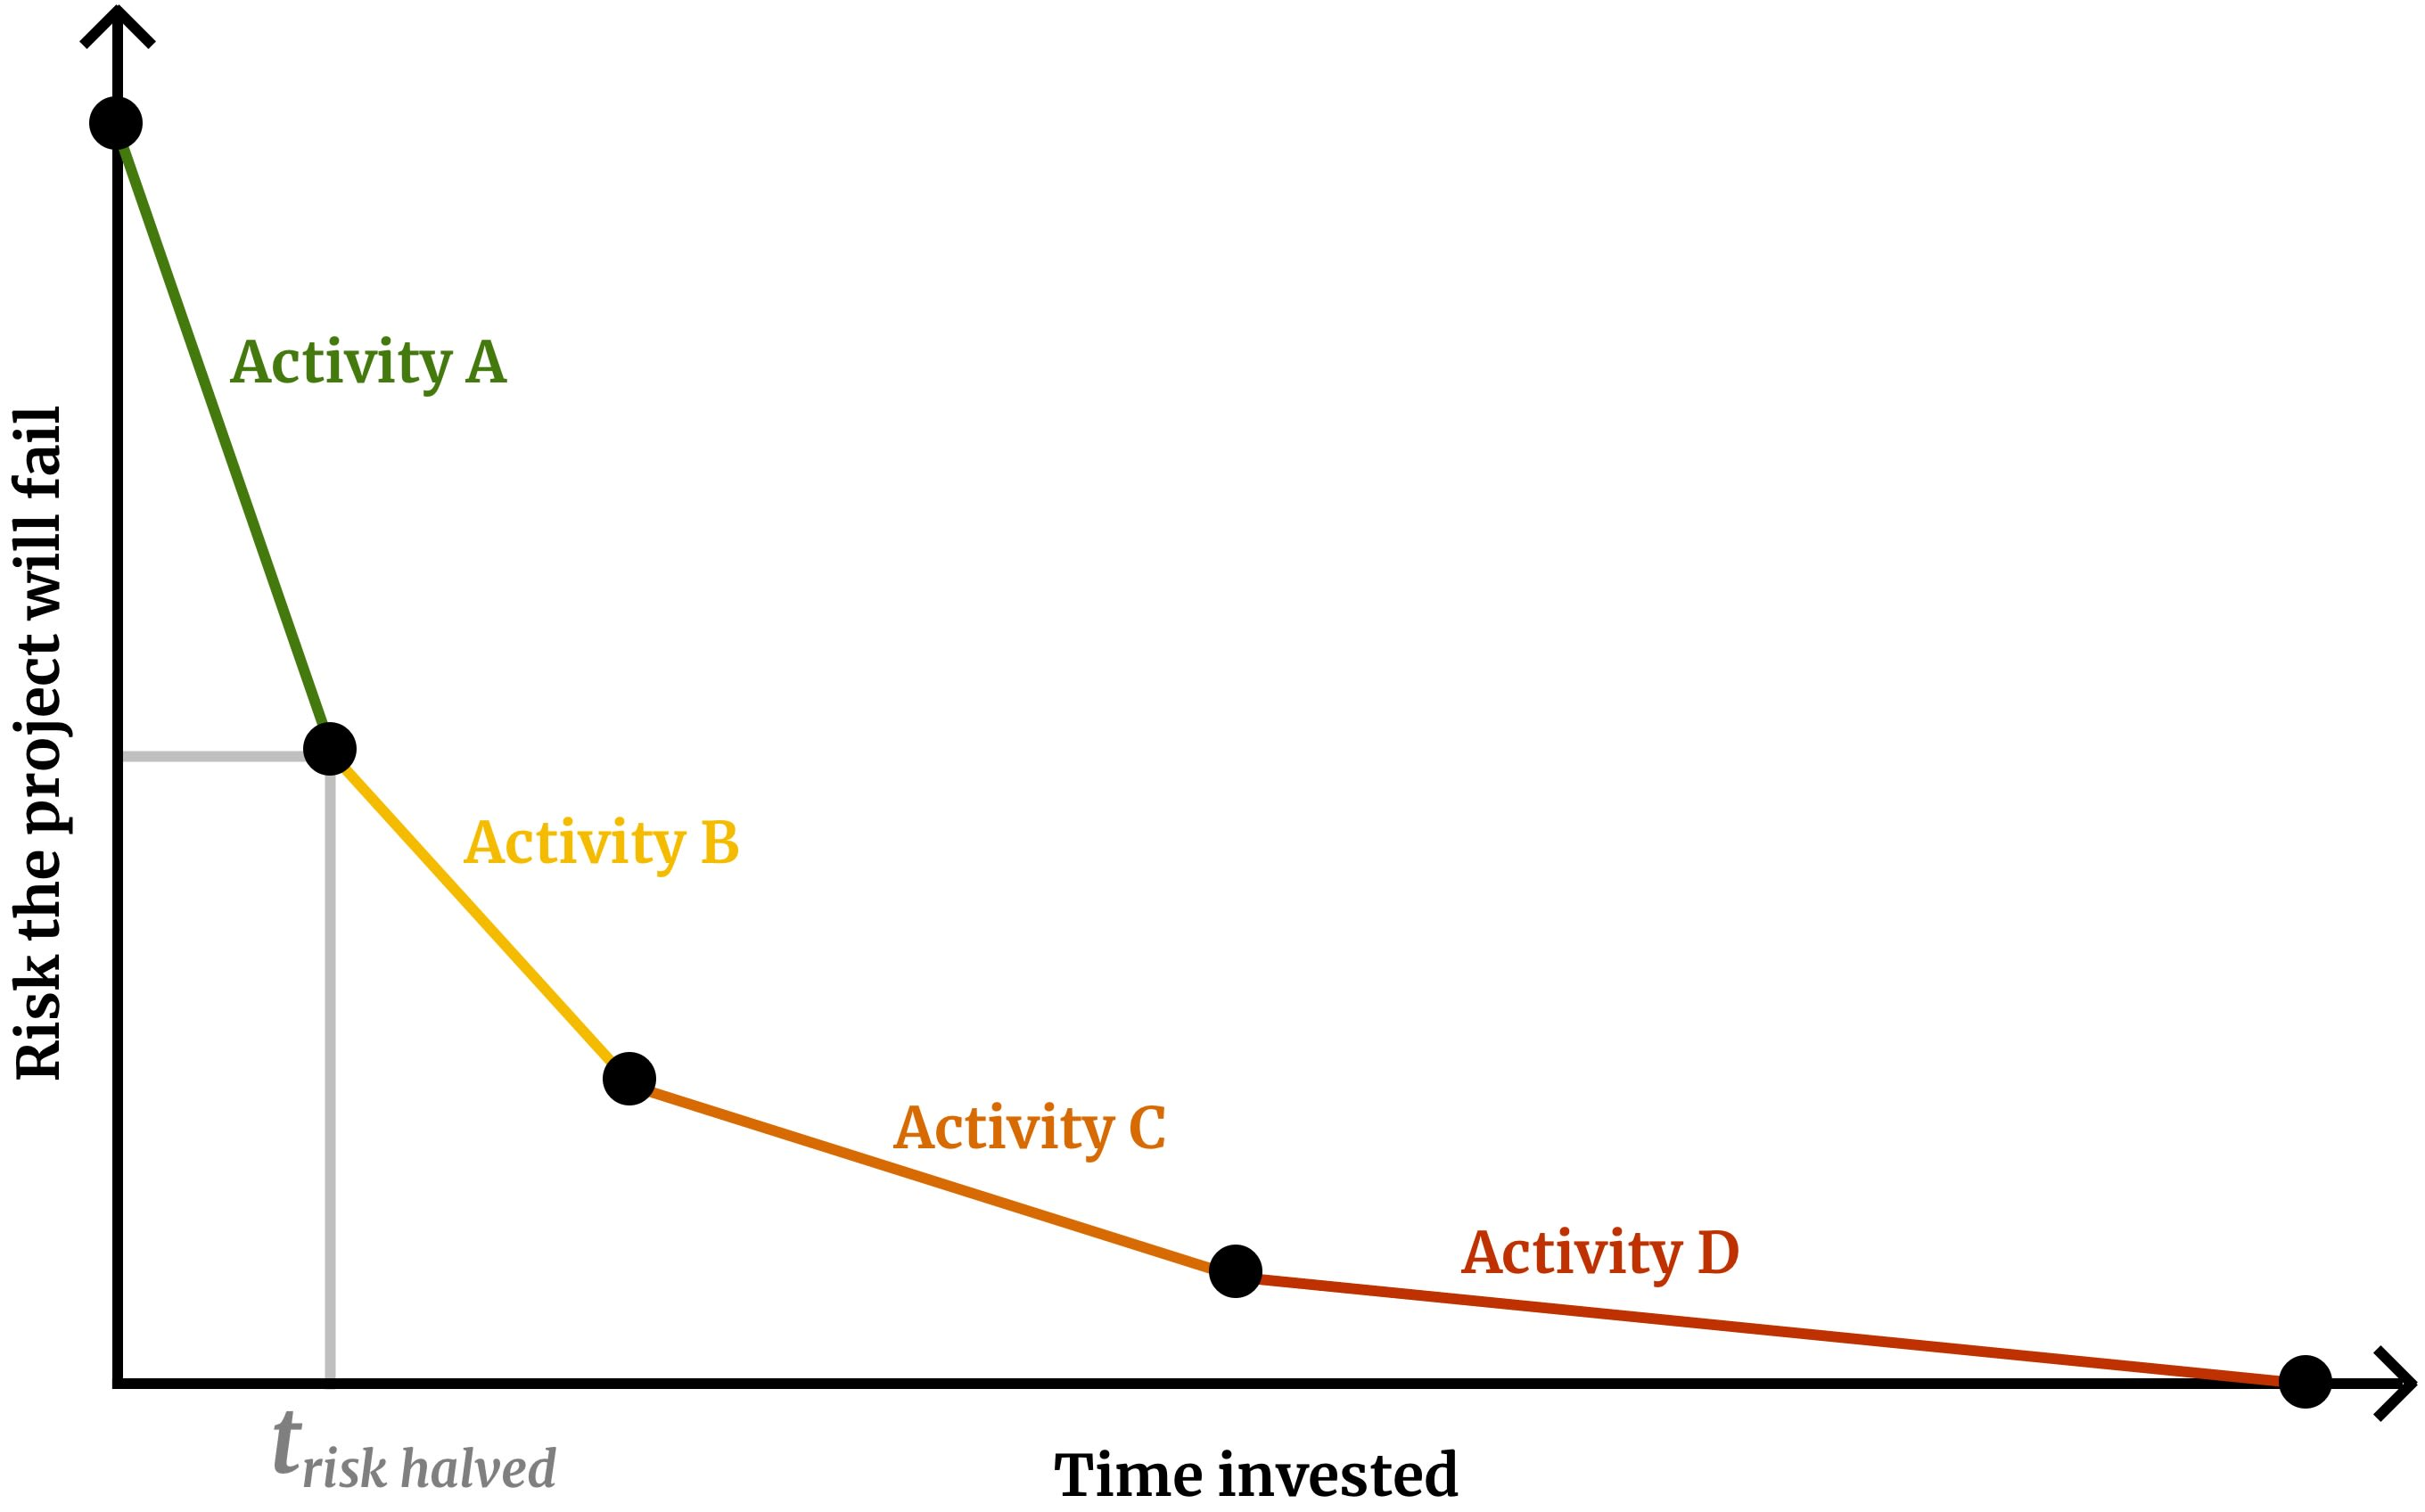 A graph of risk versus time for a project in which the risk decreases quickly at first and then slowly later.